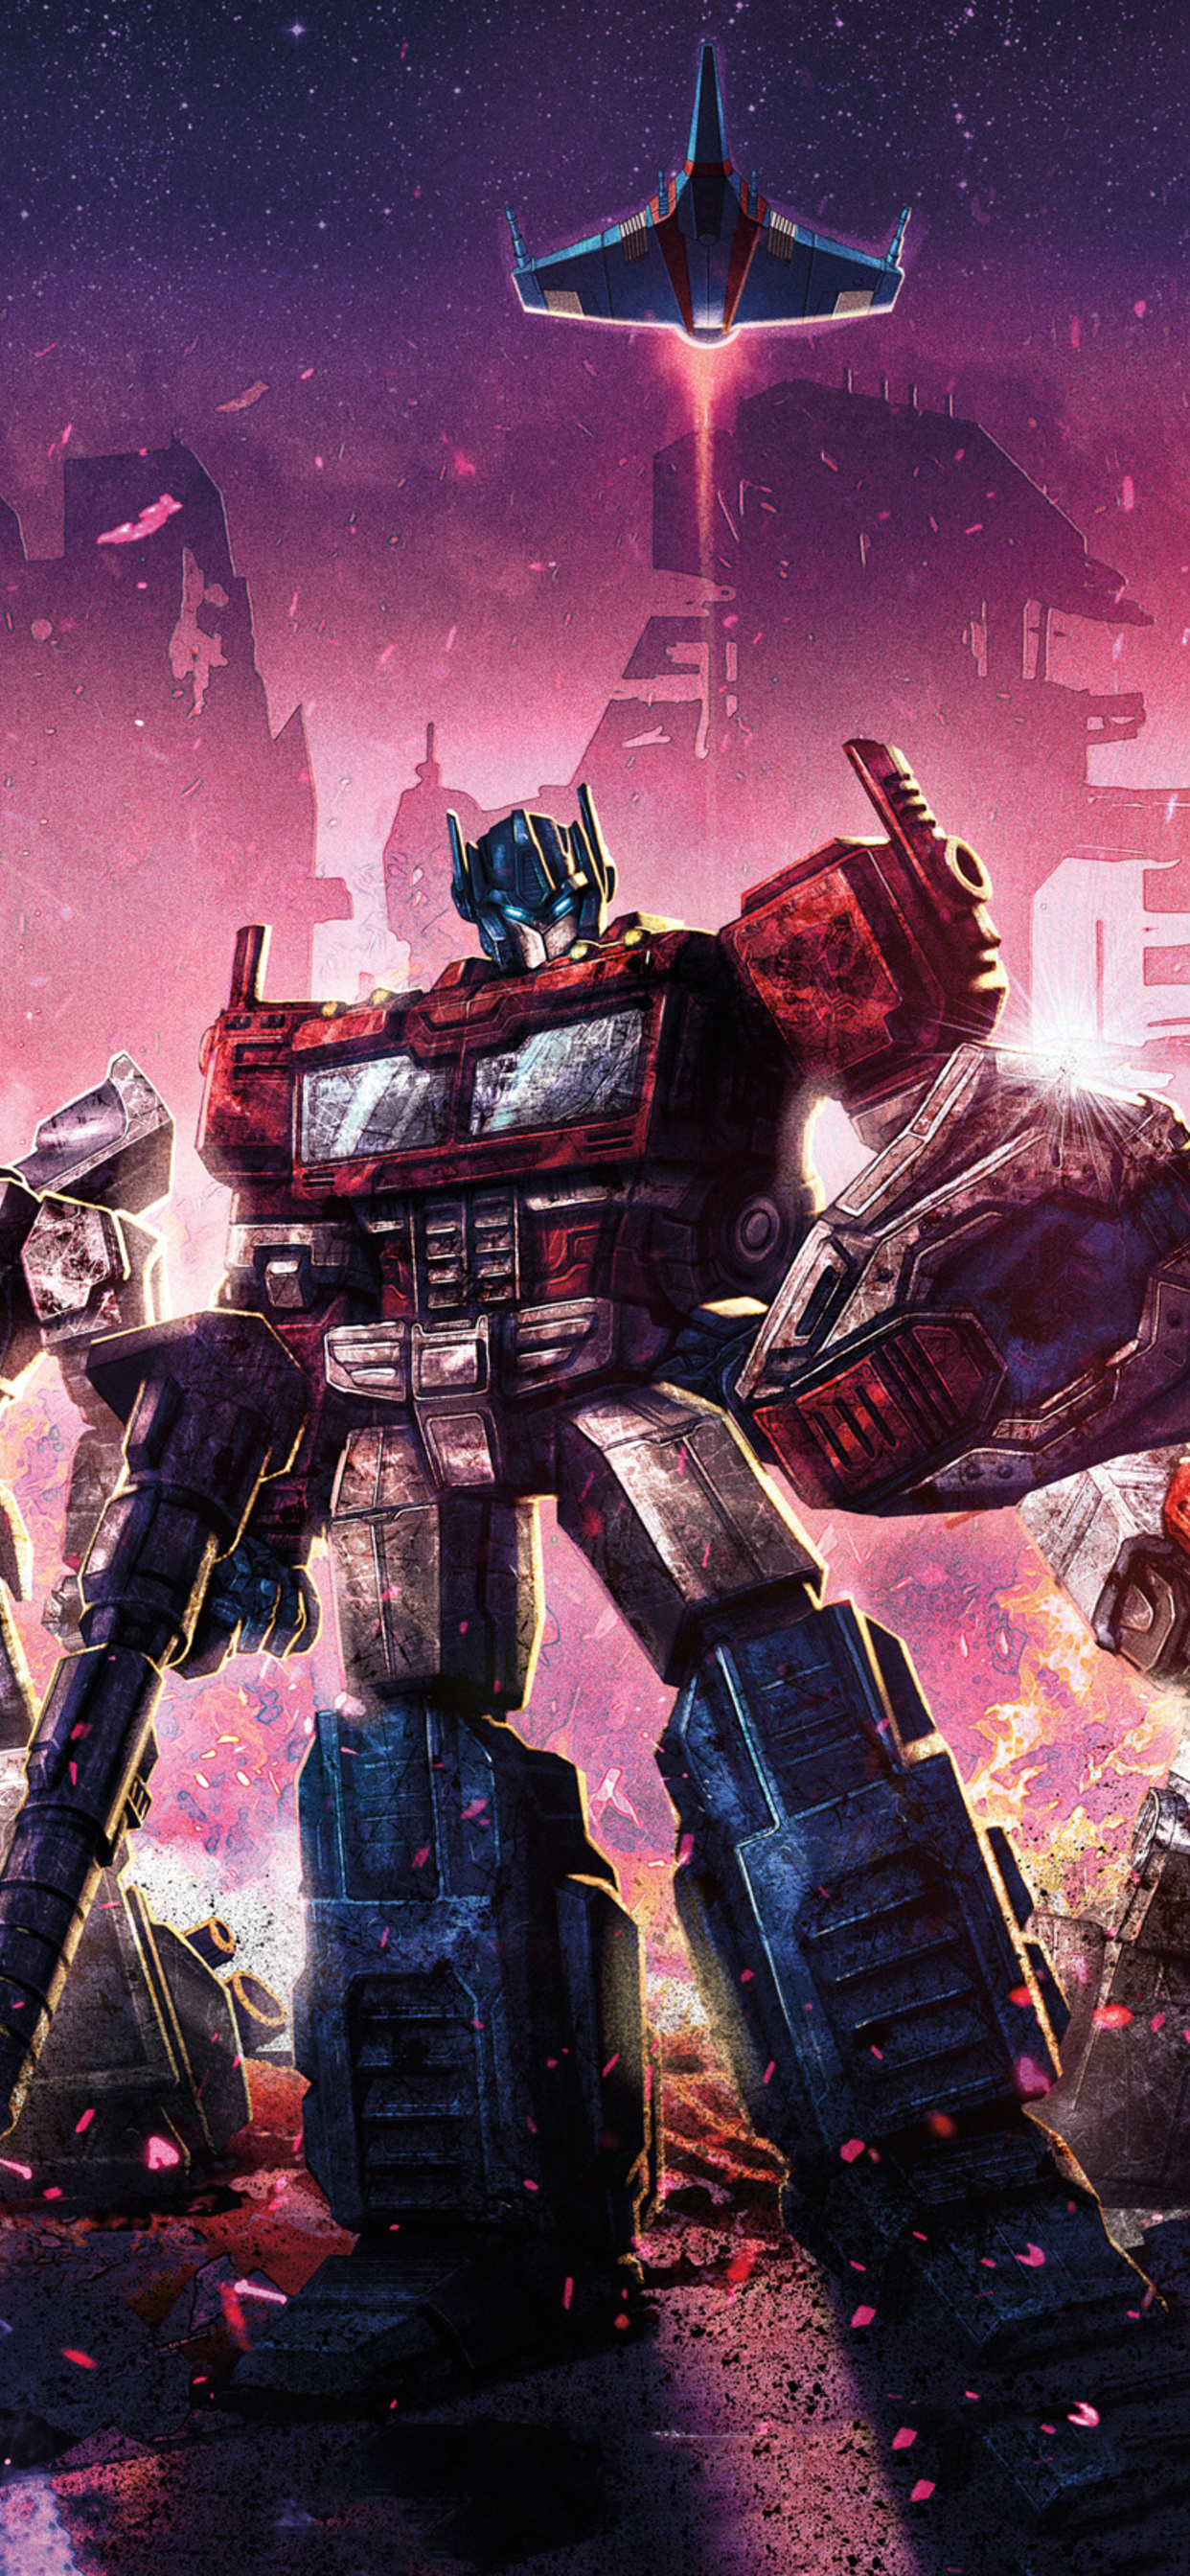 1242x2688 Transformers Siege War For Cybertron Iphone Xs Max Hd 4k